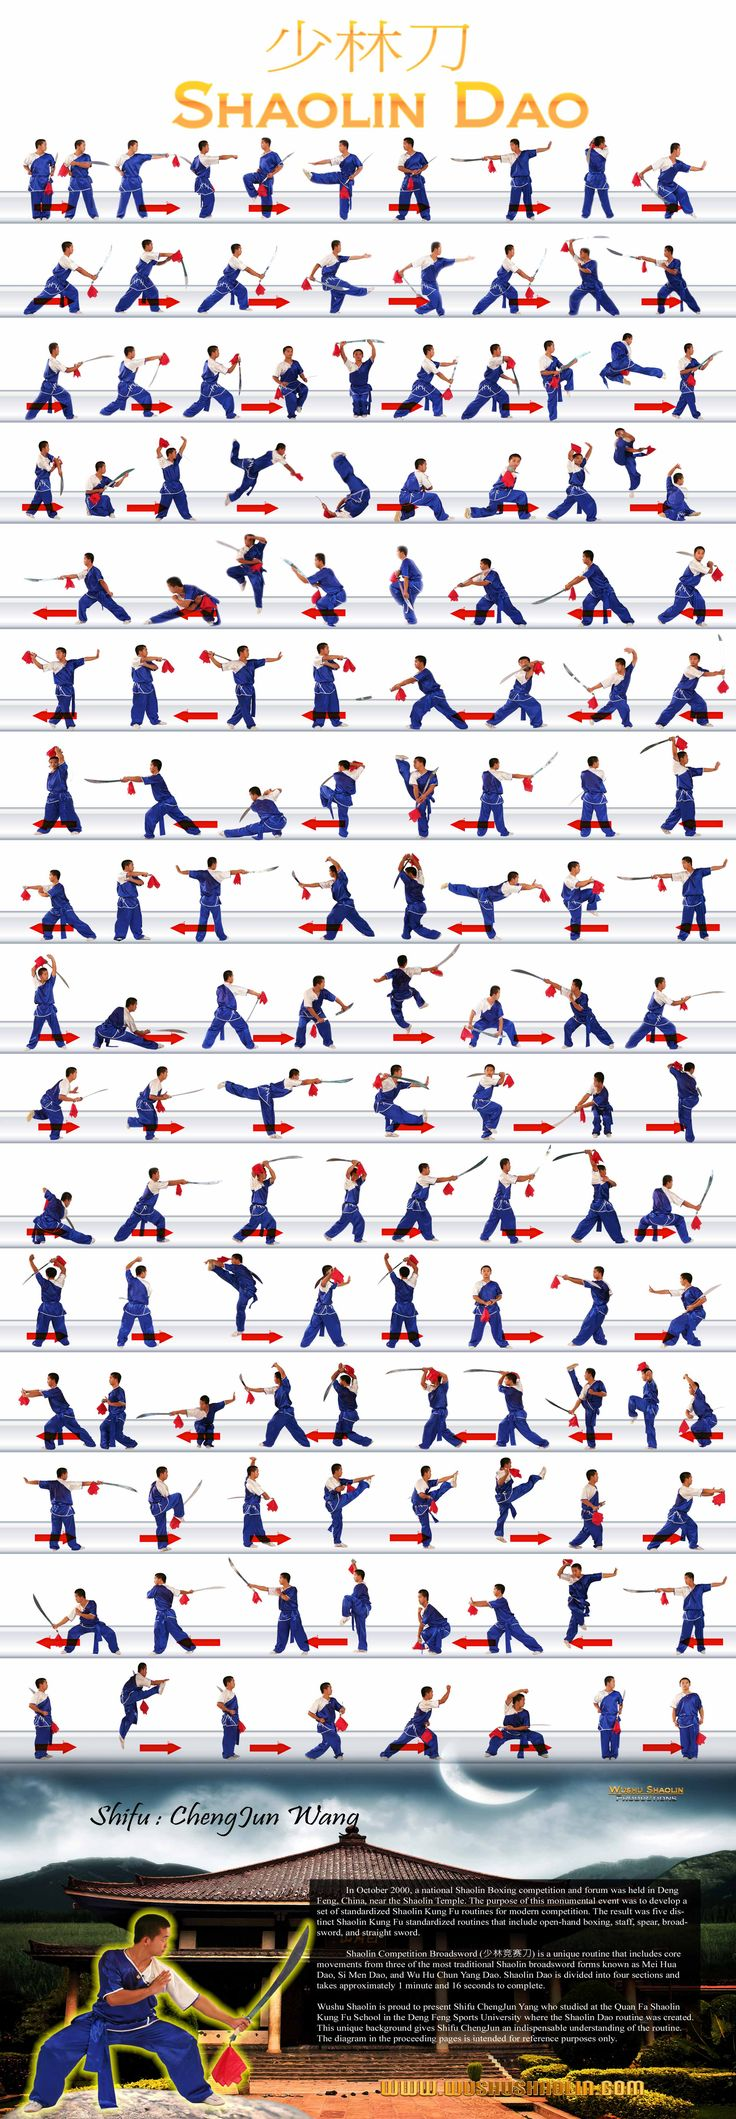 Best 25+ Martial ideas on Pinterest | Martial arts near me, Karate ...